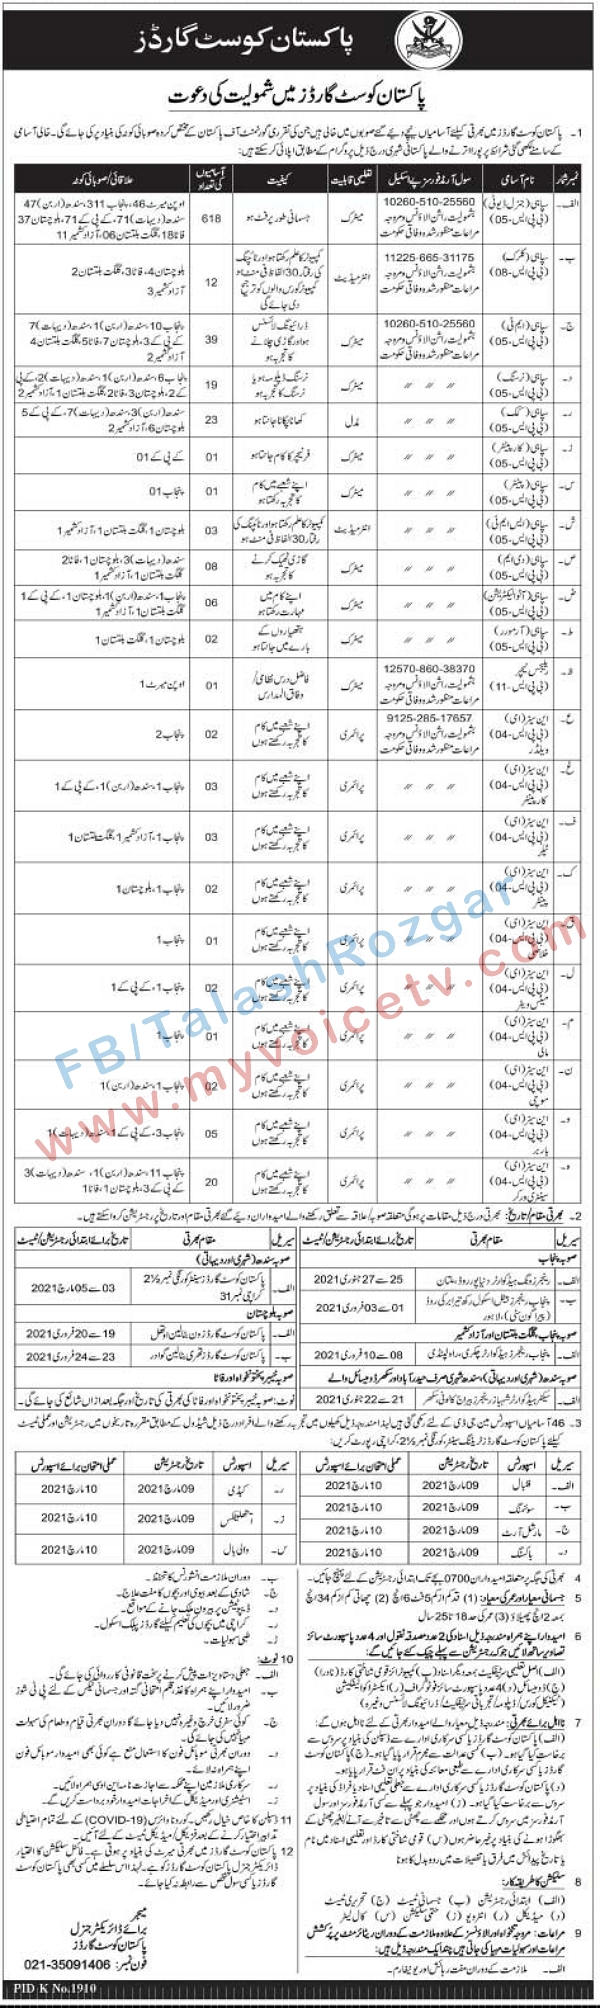 👉 #Jobs - Pakistan Coast Guard Jobs – More than 700 jobs in different trade  - hurry up apply now>>>